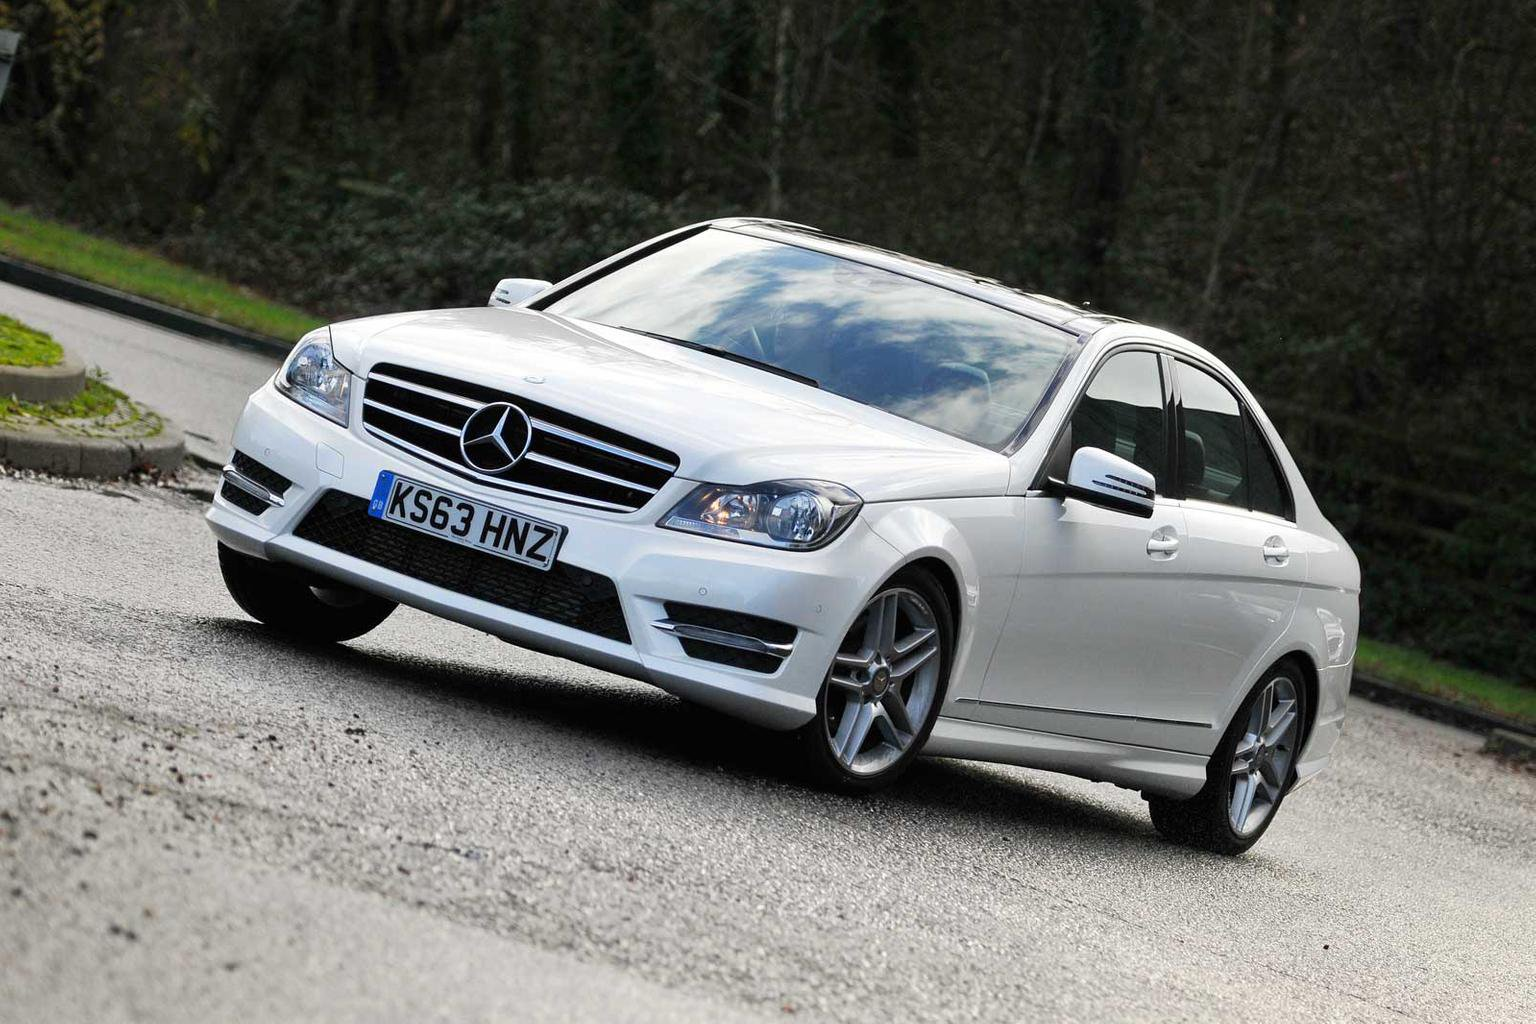 2014 Mercedes C220 CDI AMG Sport Edition review